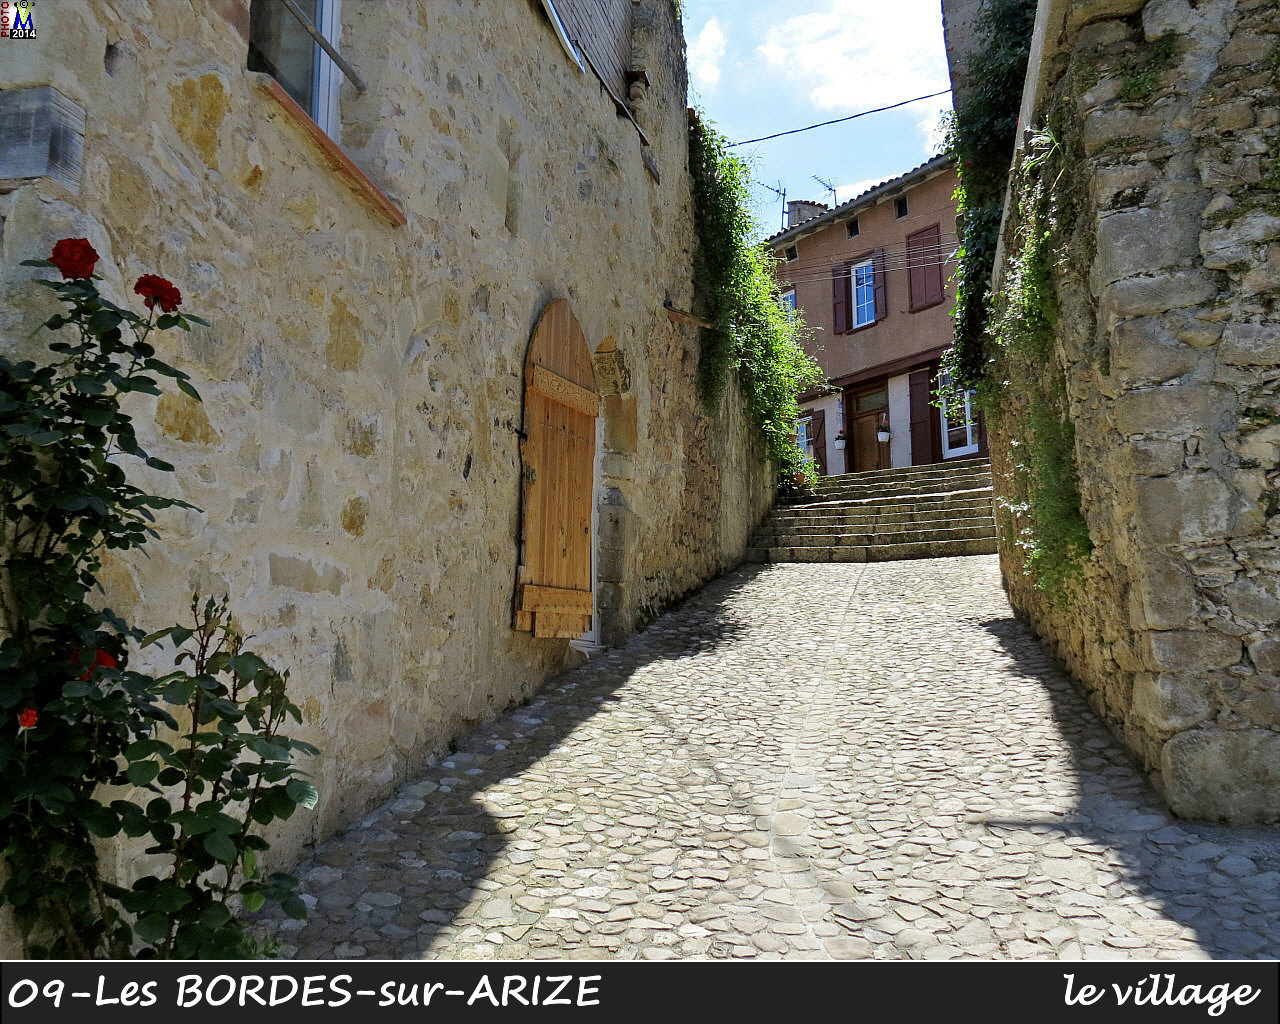 09BORDES-ARIZE_village_114.jpg